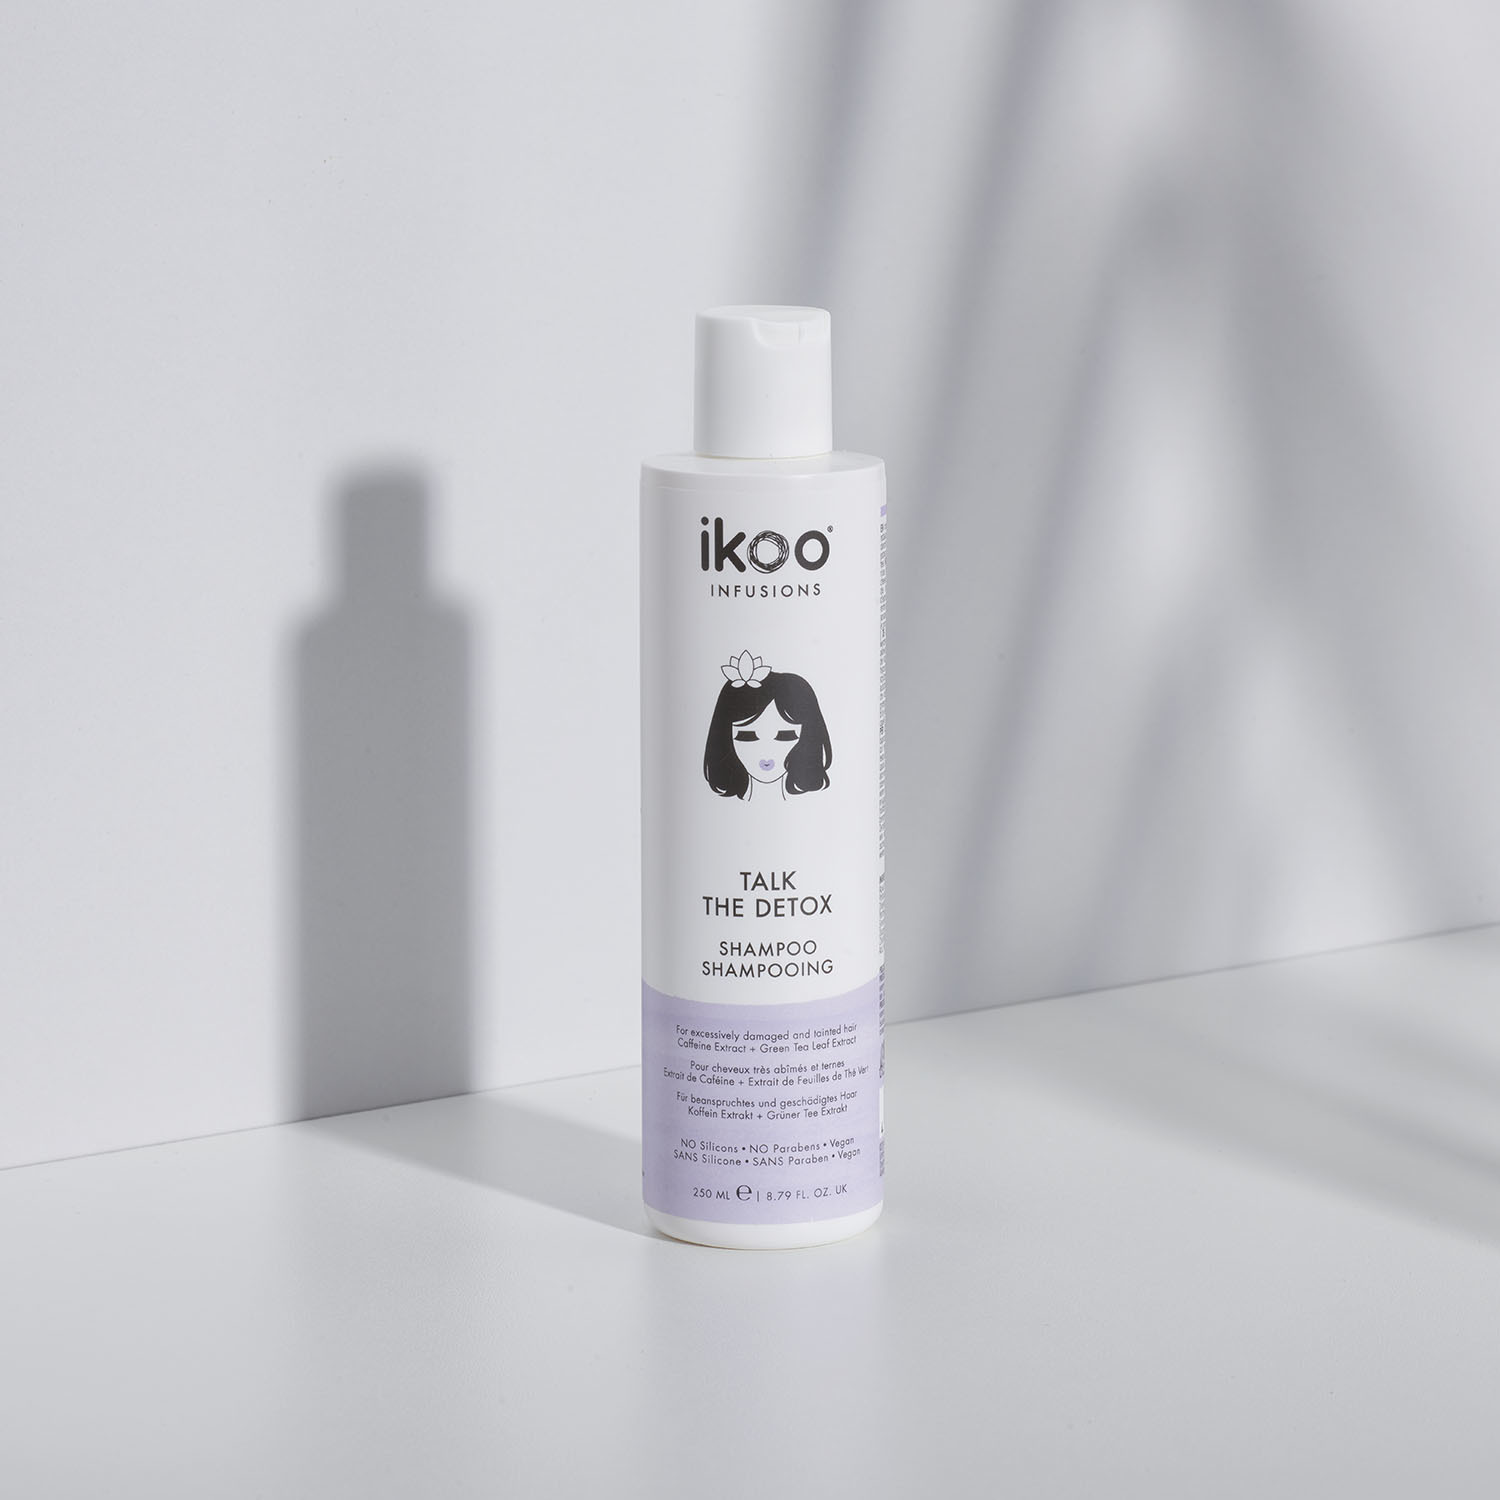 Шампунь ikoo infusions Talk the Detox Shampoo «ДЕТОКС ПРОКАЧКА», 250 мл.